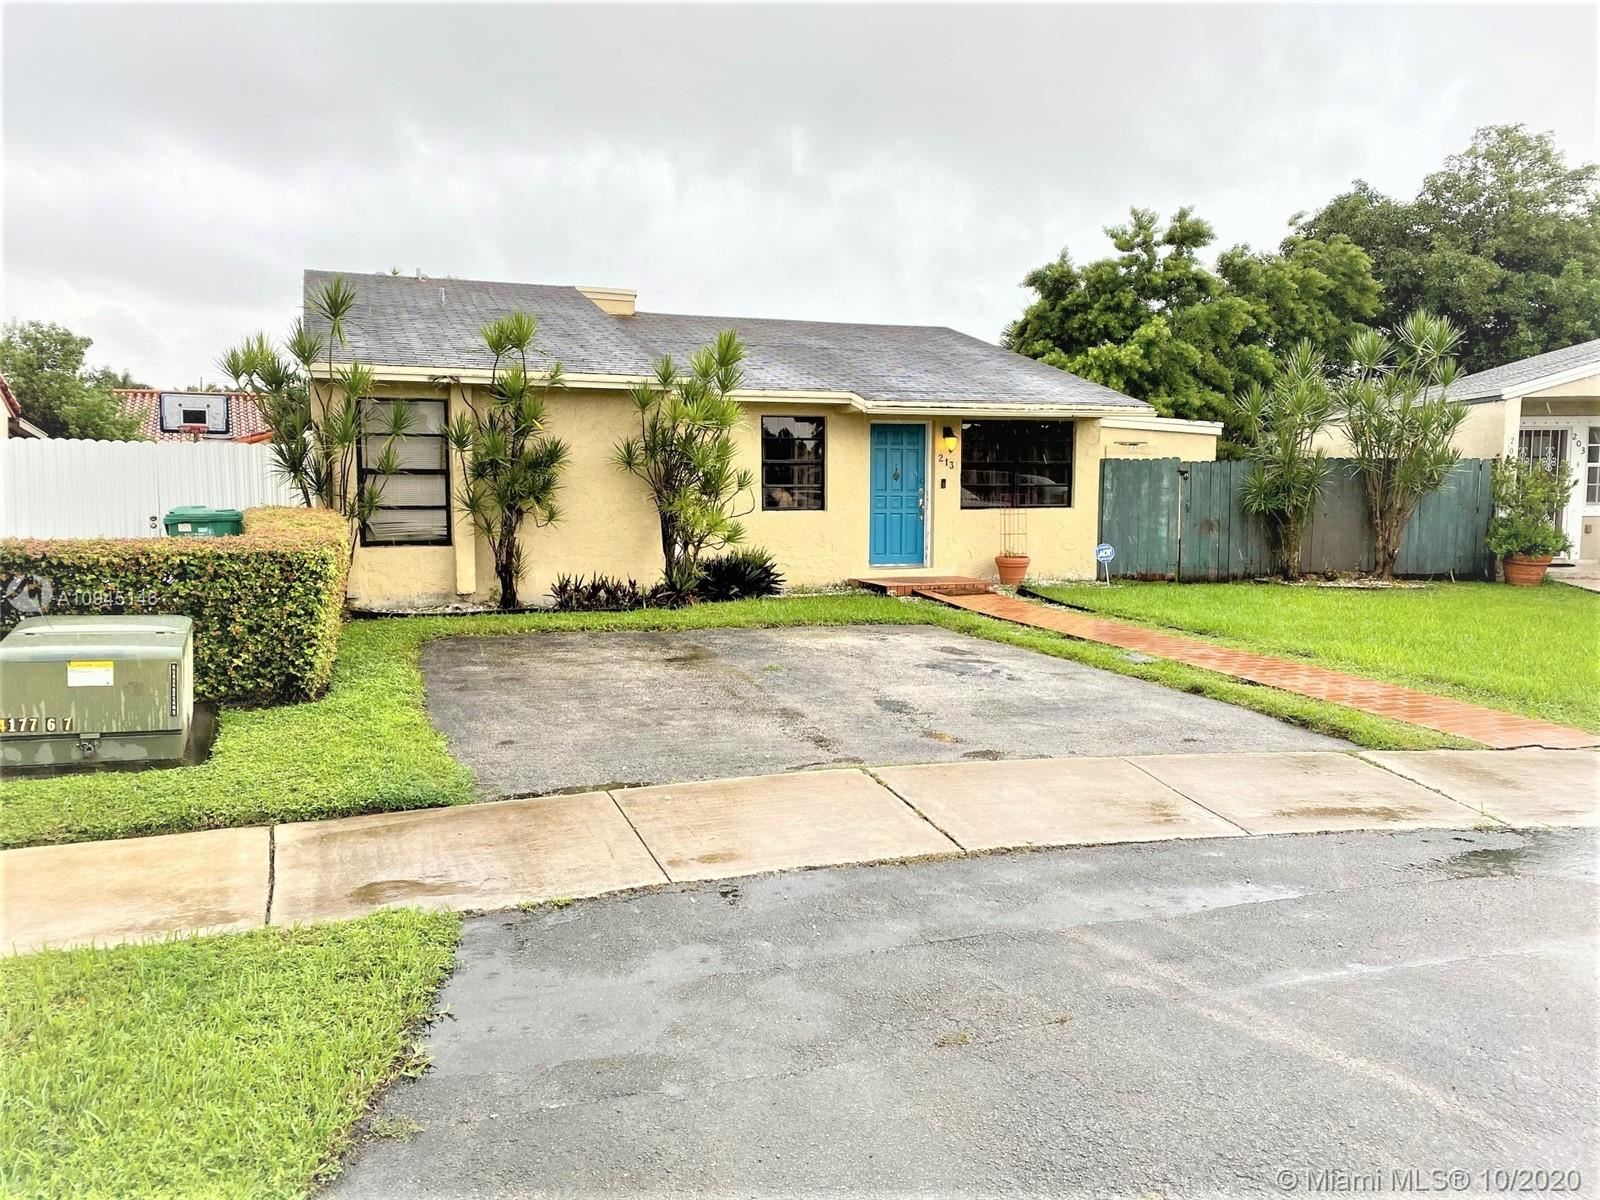 213 NW 132nd Pl, Miami, FL 33182 - #: A10945146